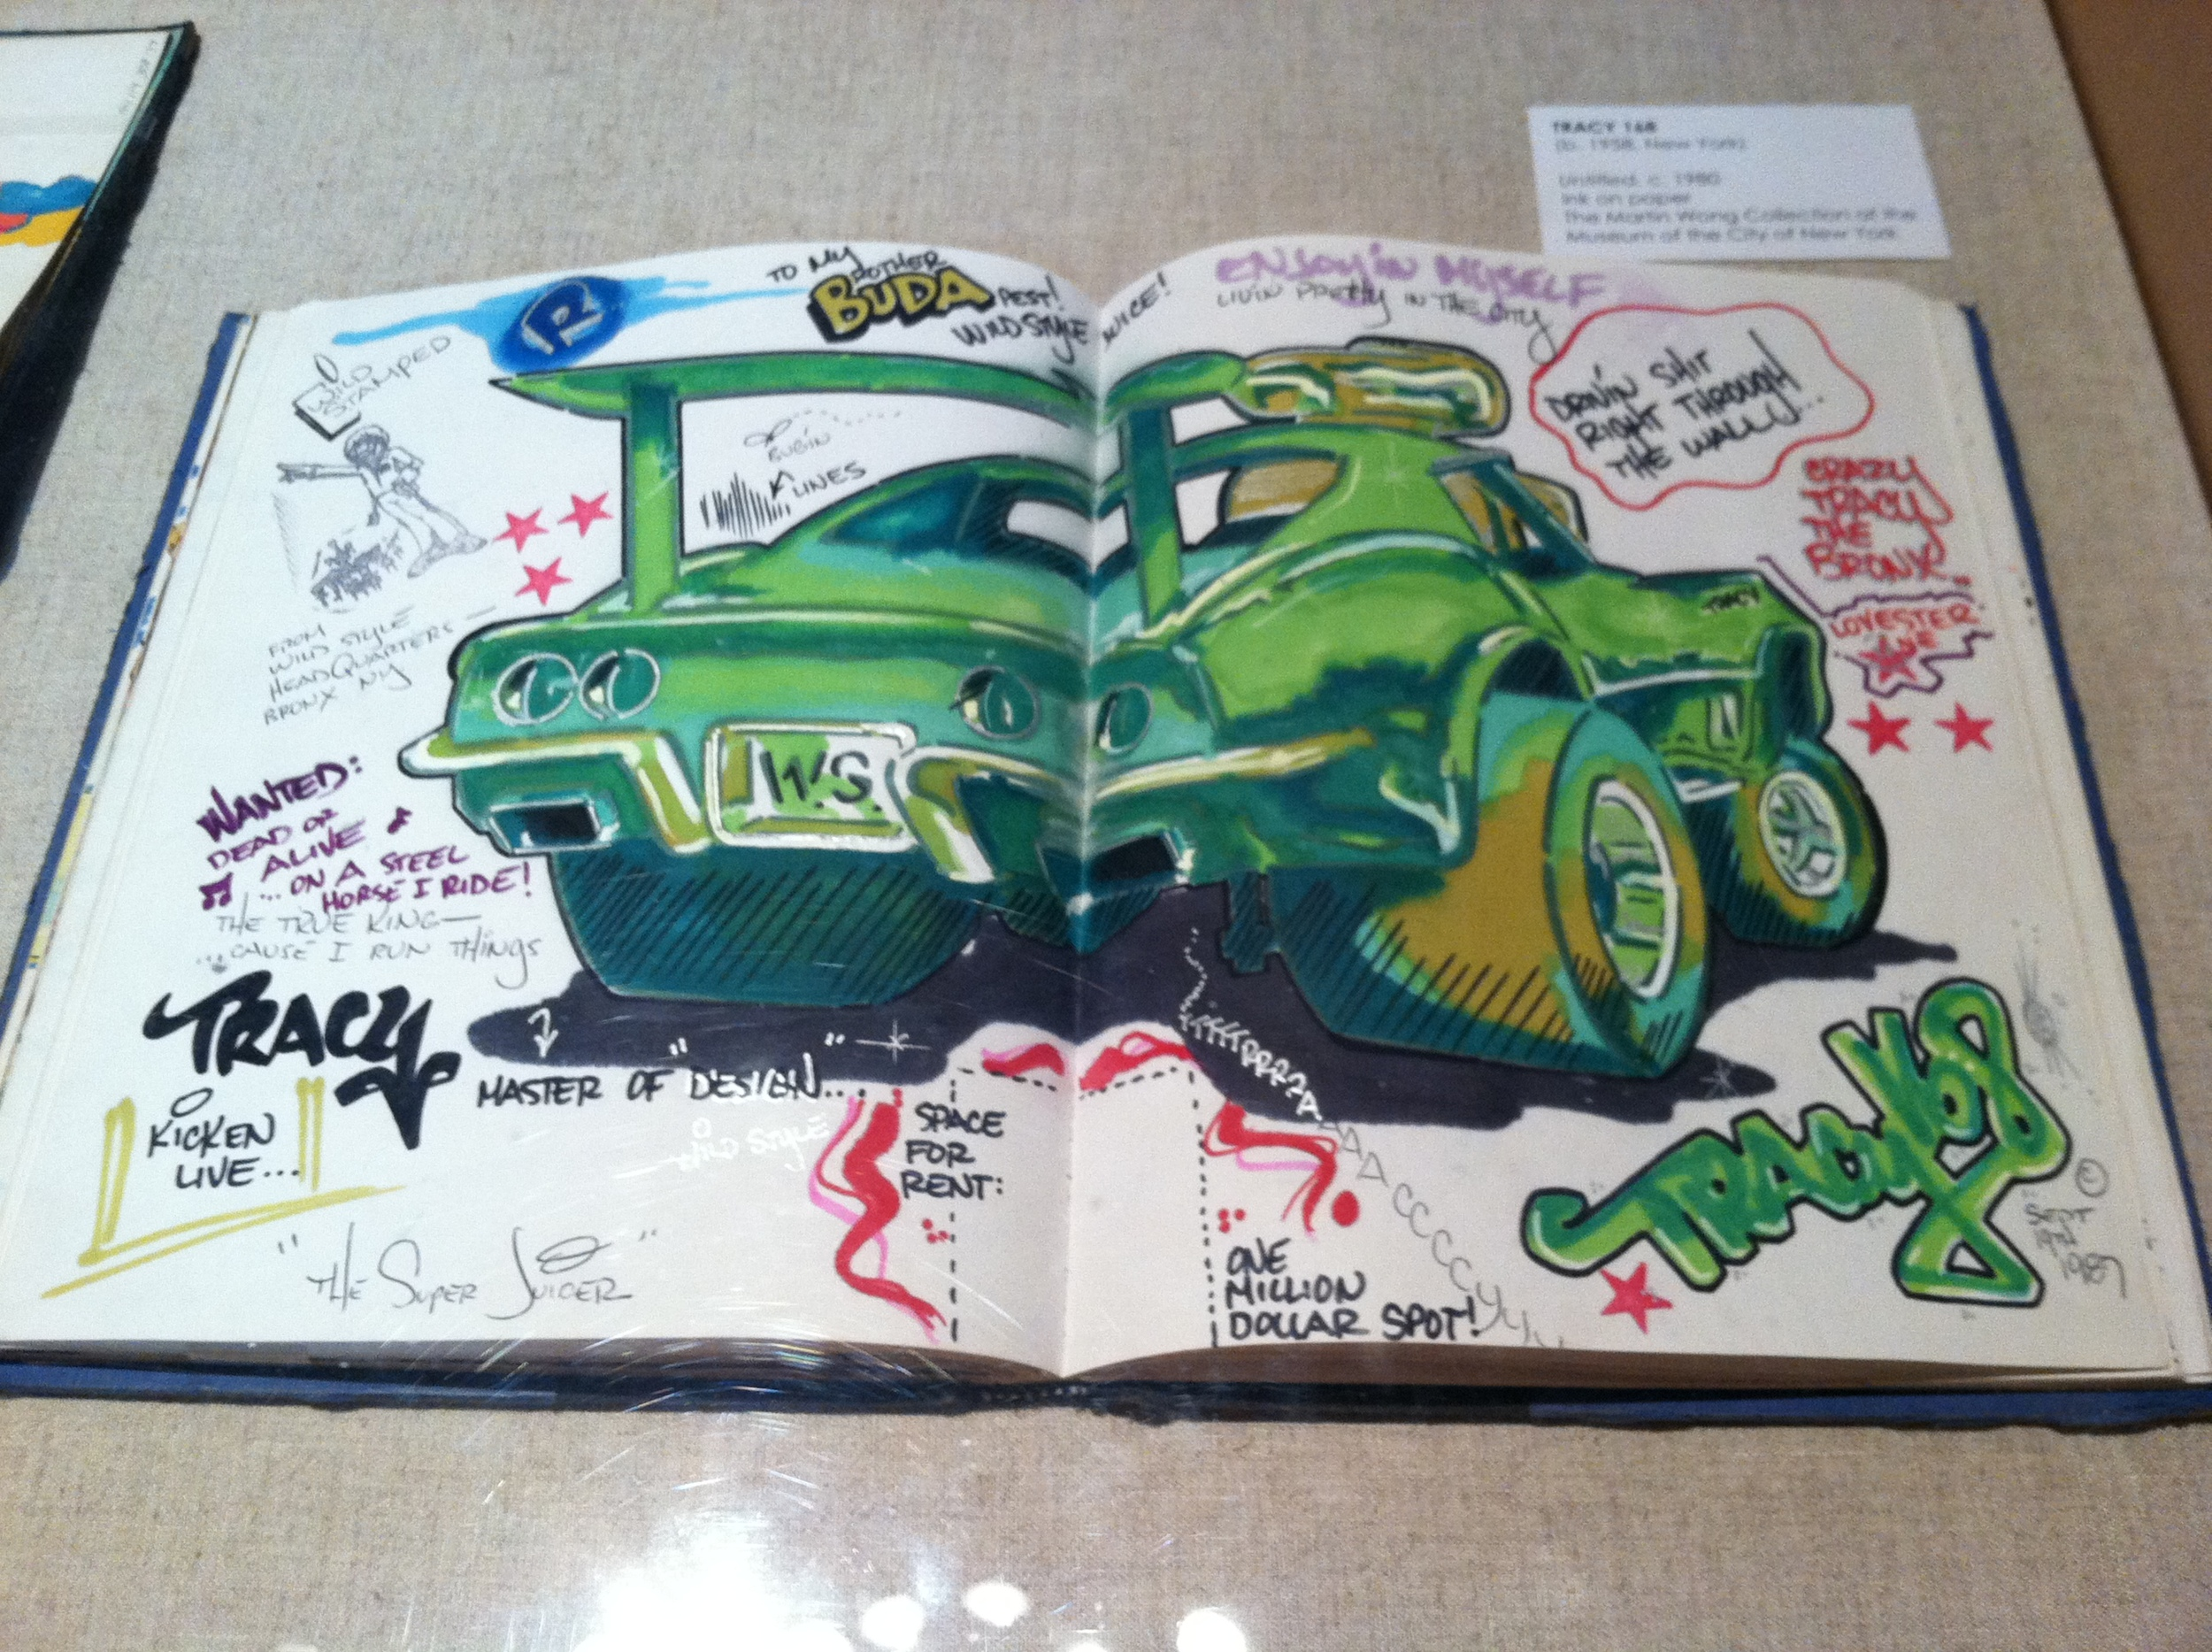 """""""The Super Juicer"""" by Tracy 168, Enclosed in """"the Blue Black Book"""", originally owned by Deadly Buda, now in the Martin Wong Collection, Museum of the City of New York.  Photo by the Elizabeth Harris, 2011."""